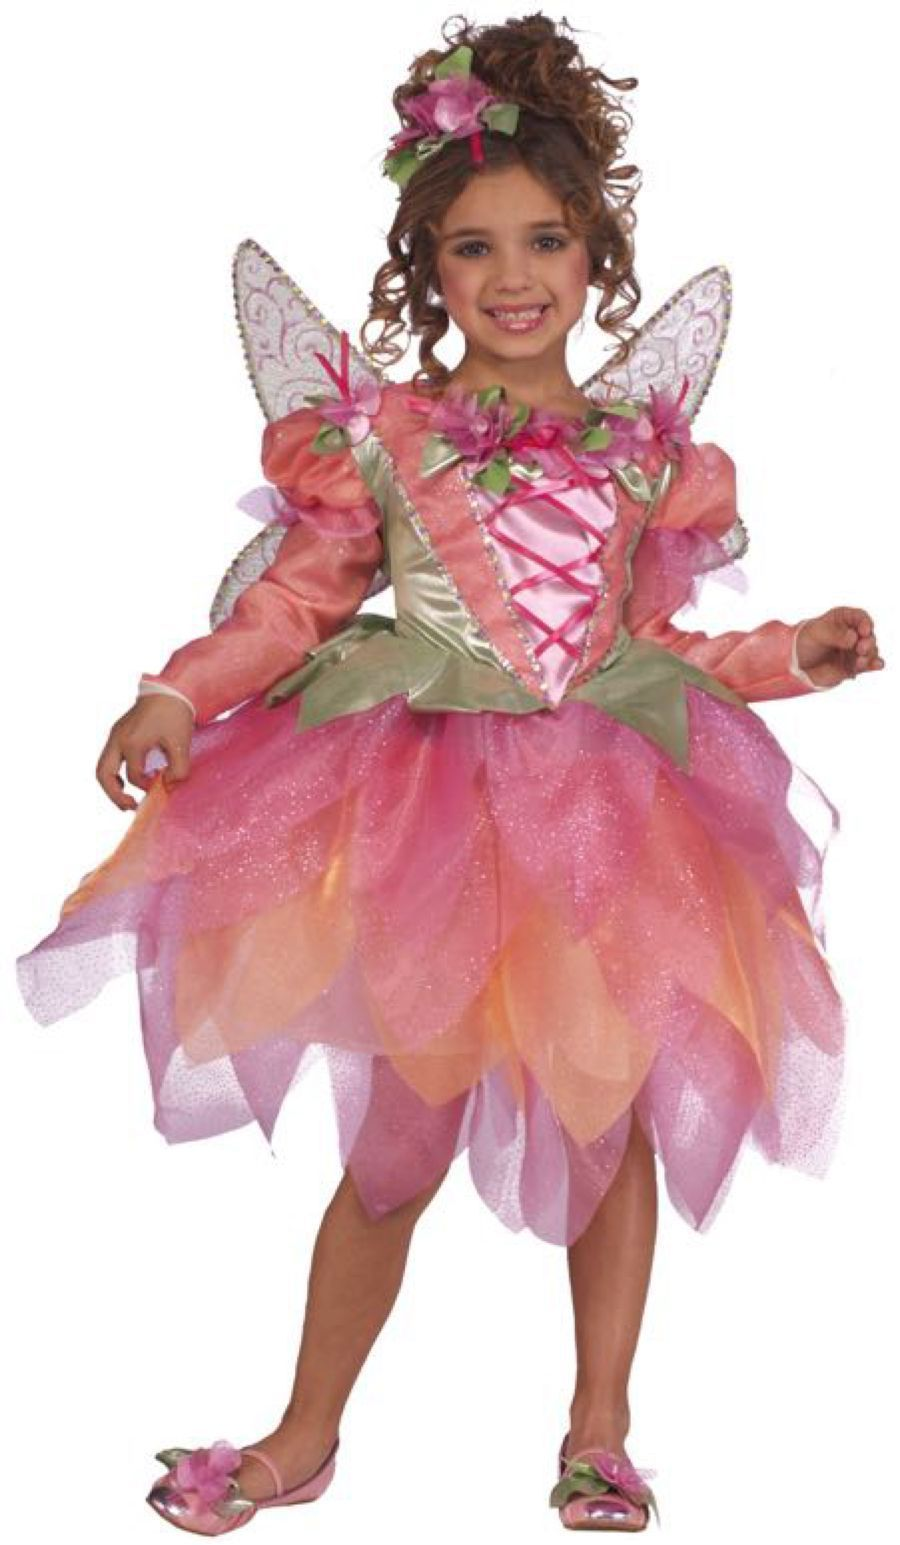 Image 0 of Rubies Deluxe Pink Pixie Girl's Costume w/Tutu Dres, Headpiece, Wings 881759 - P